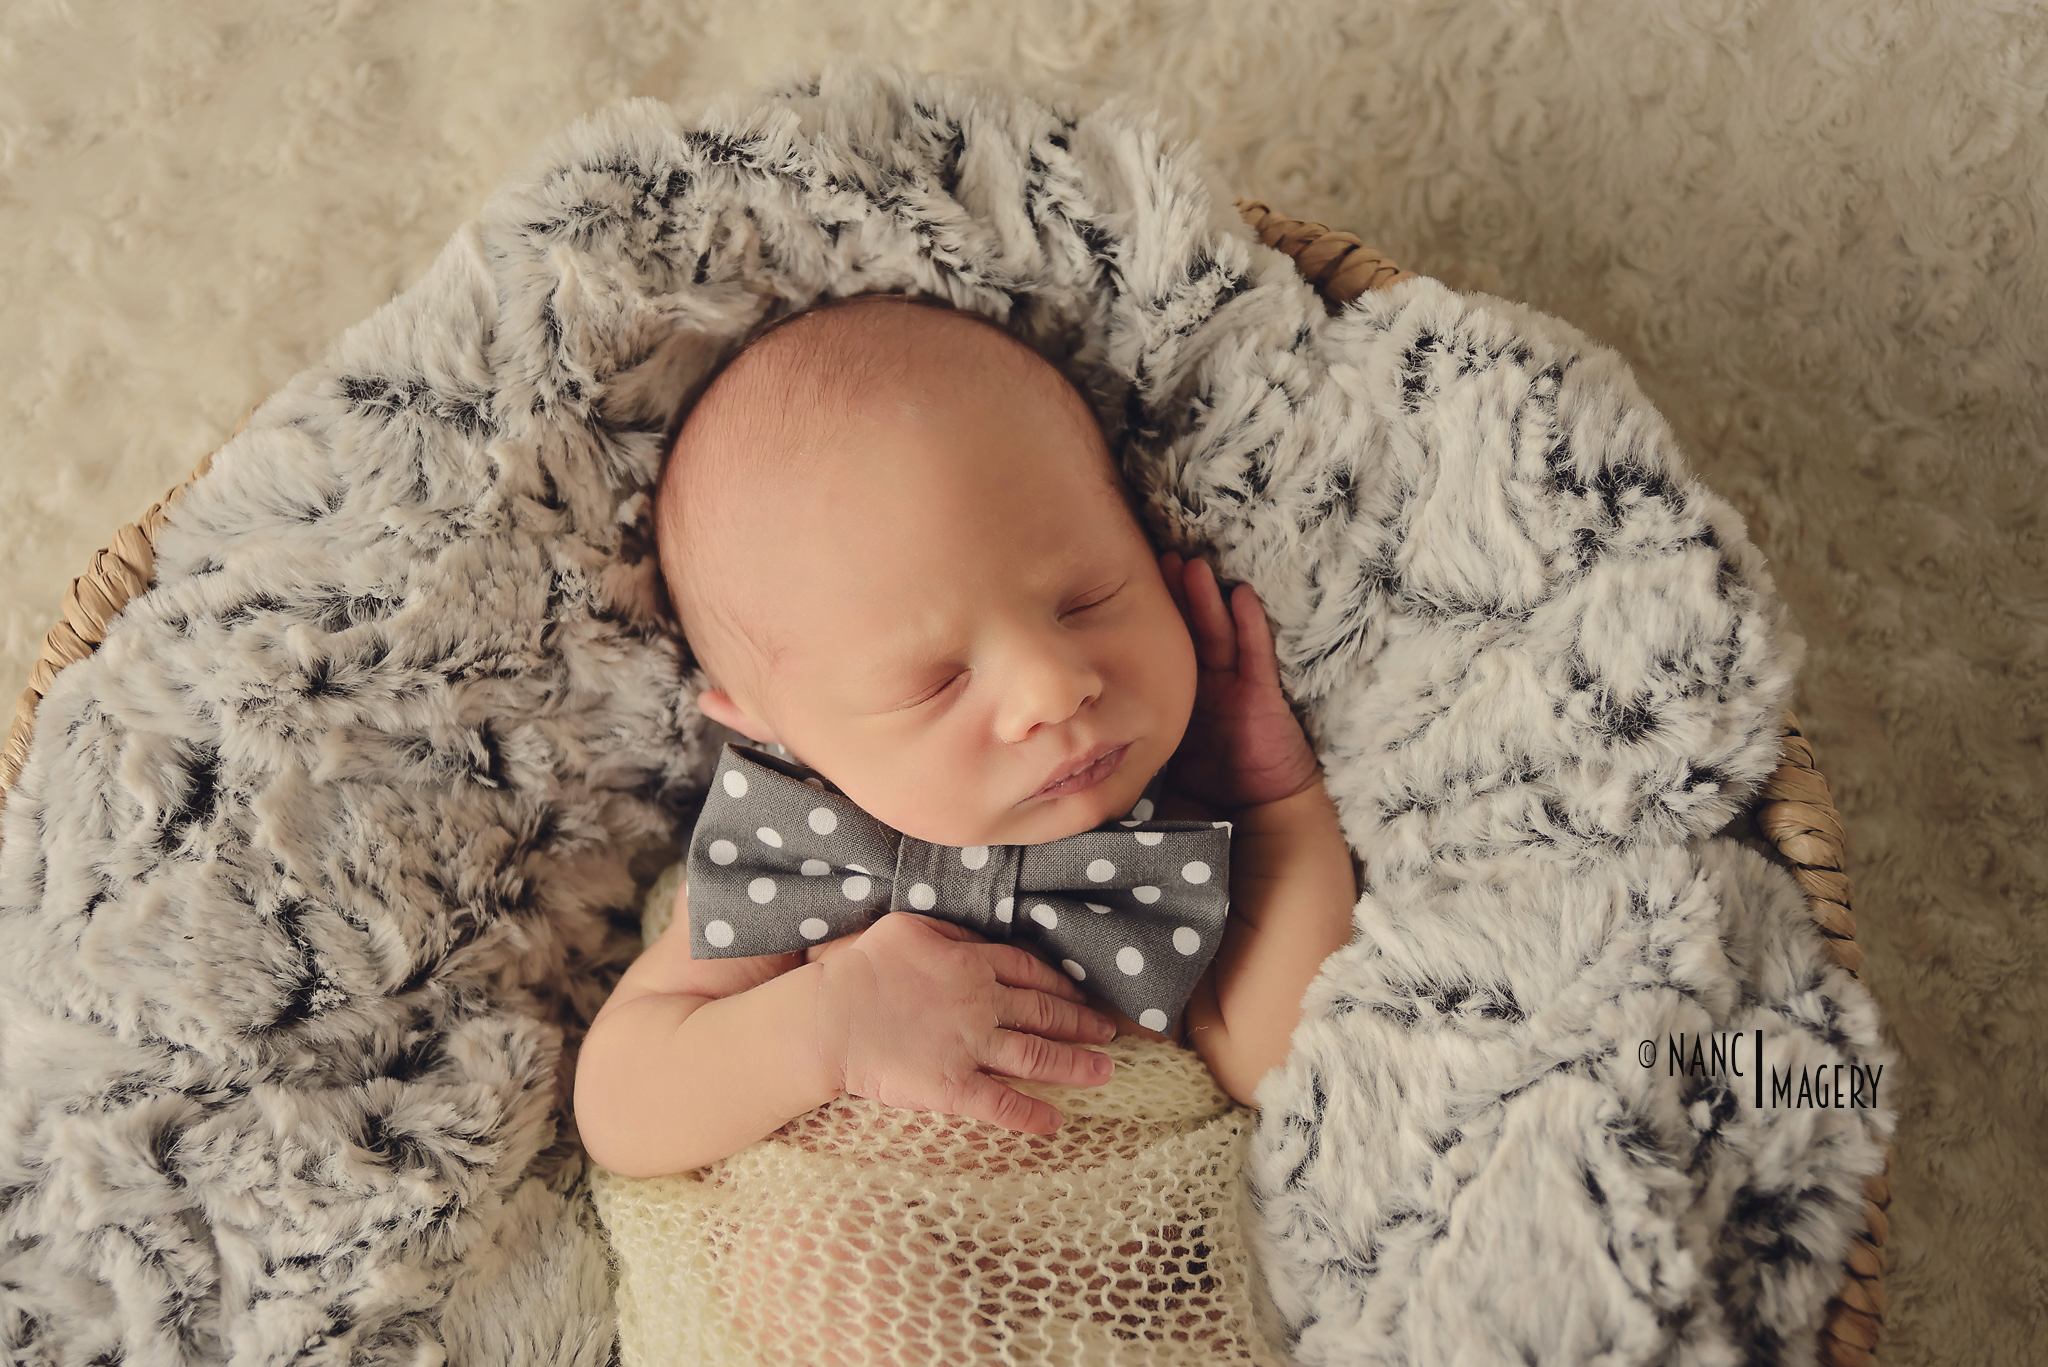 newborn with a bowtie